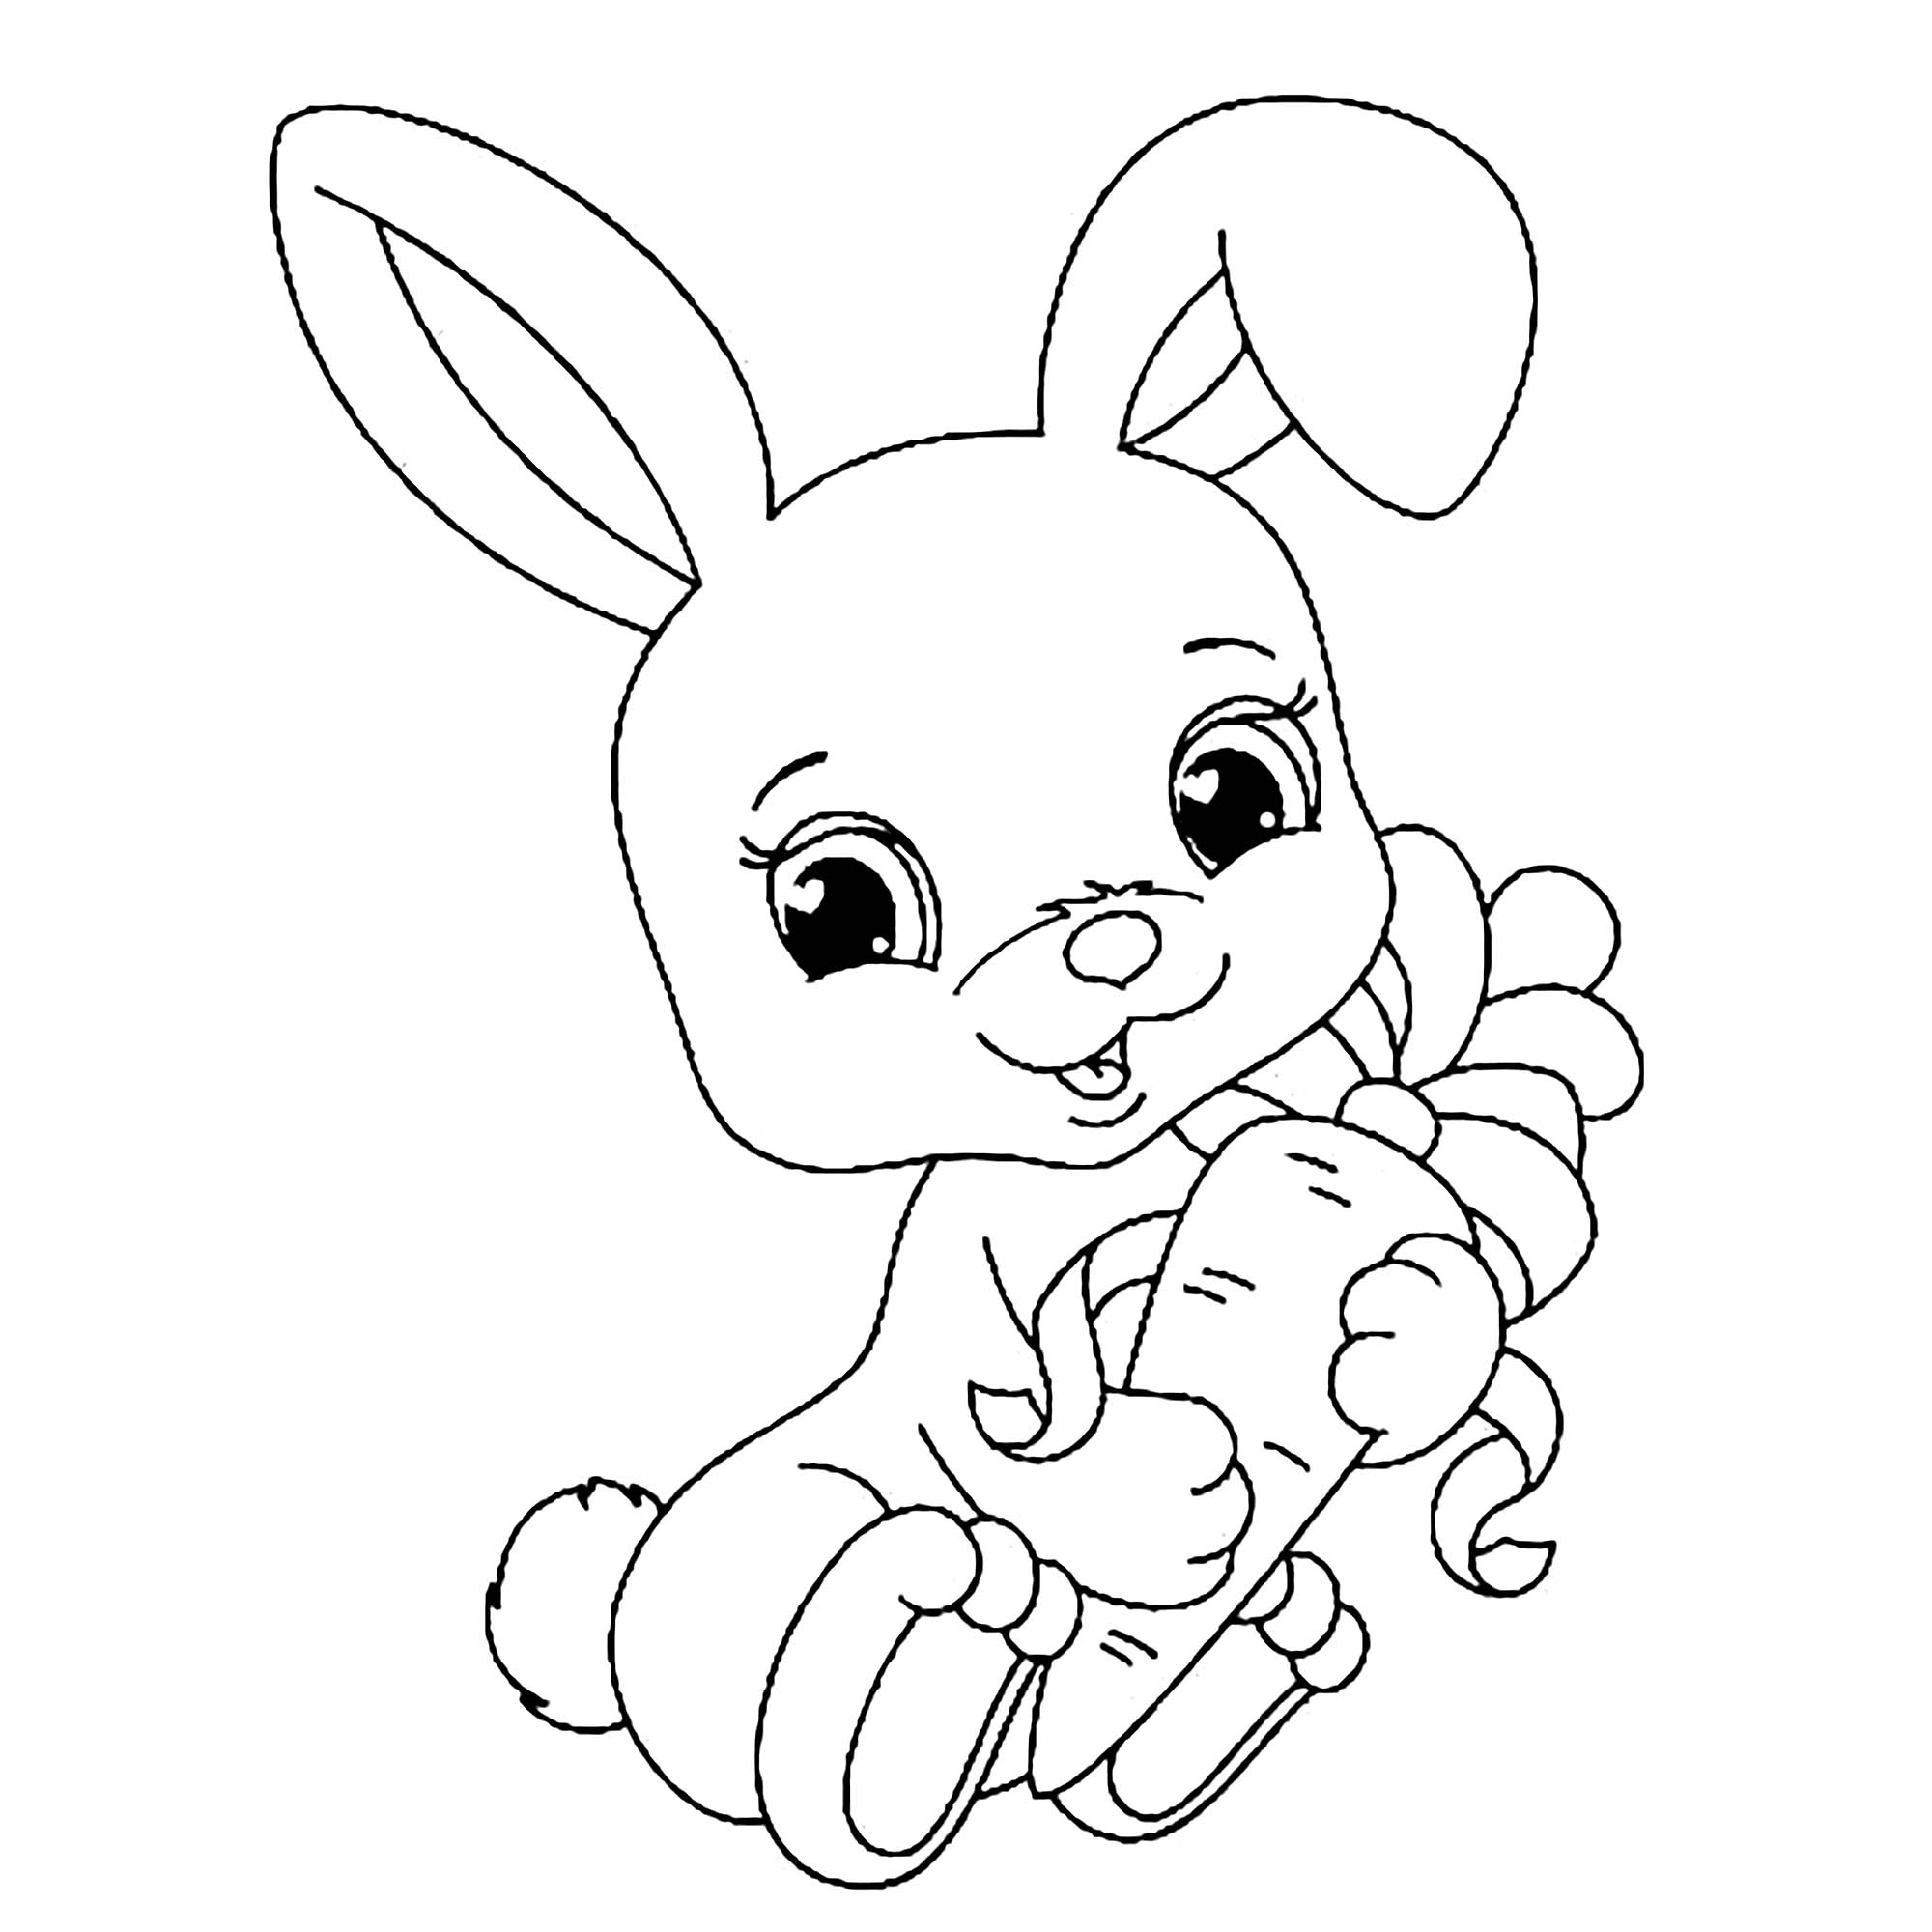 Rabbit coloring for kids